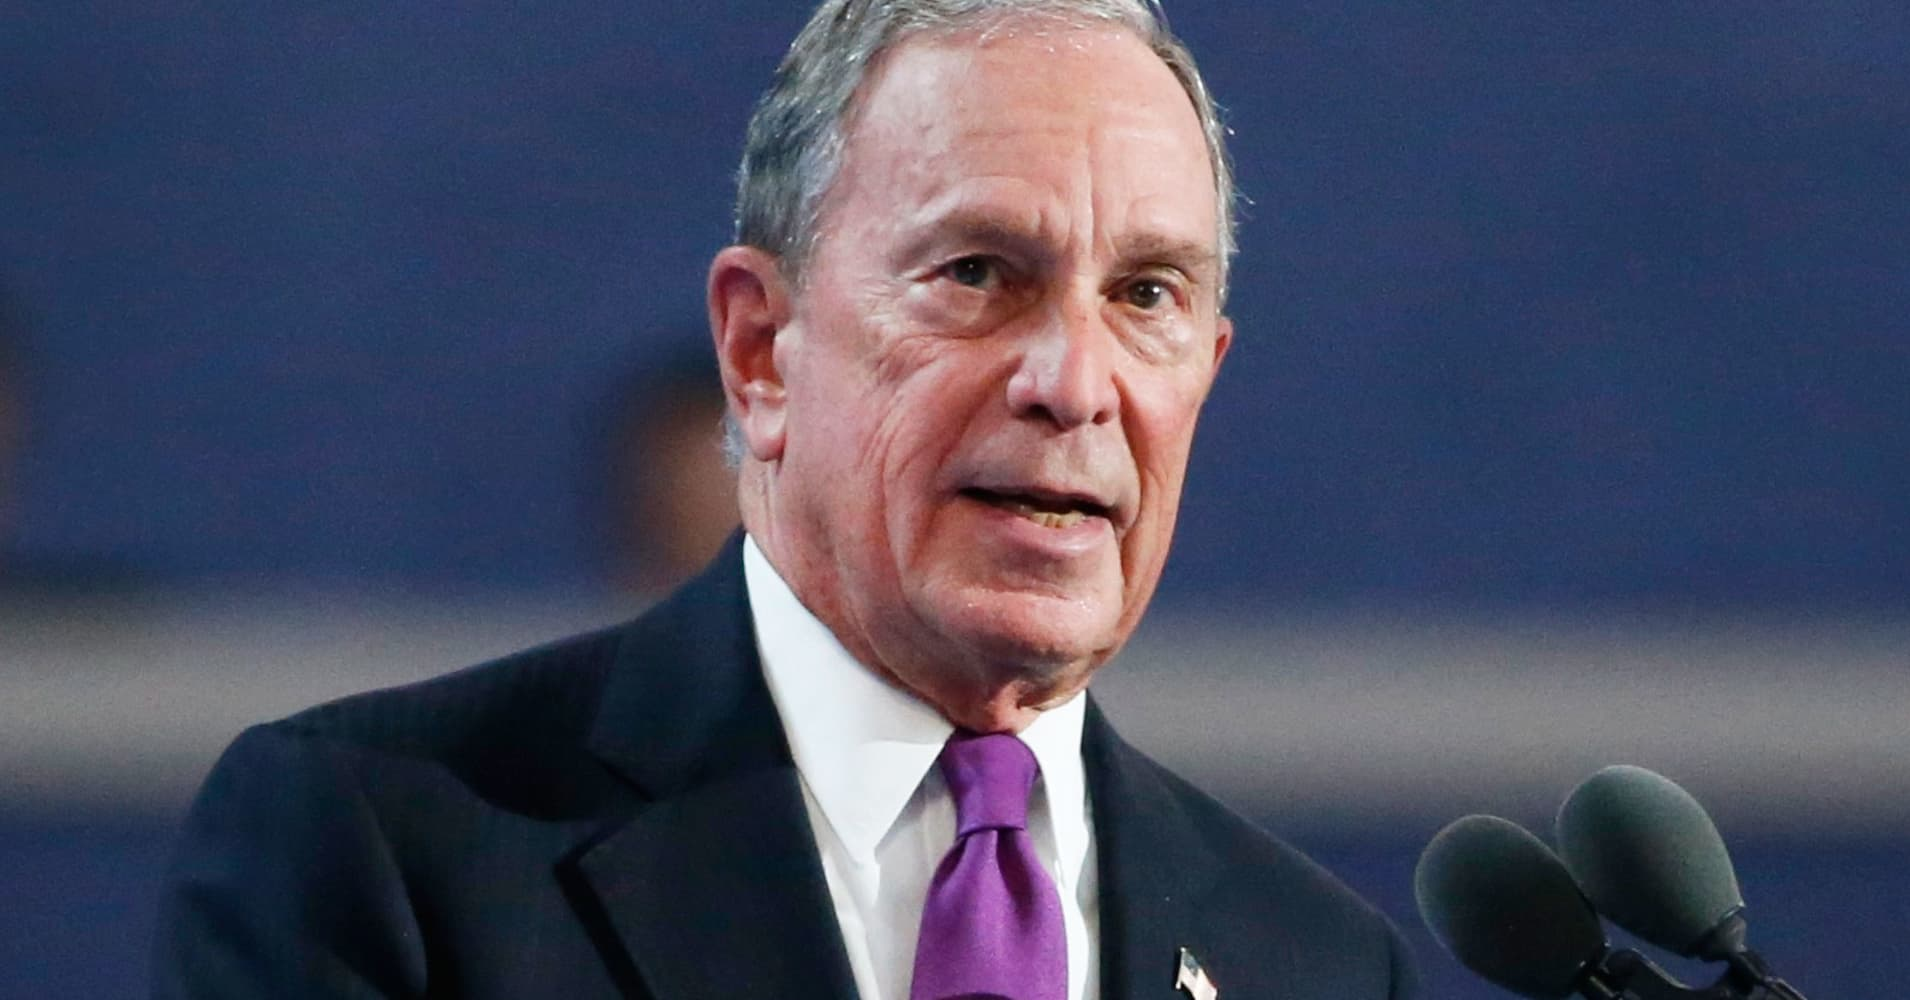 Michael Bloomberg will not run for president in 2020